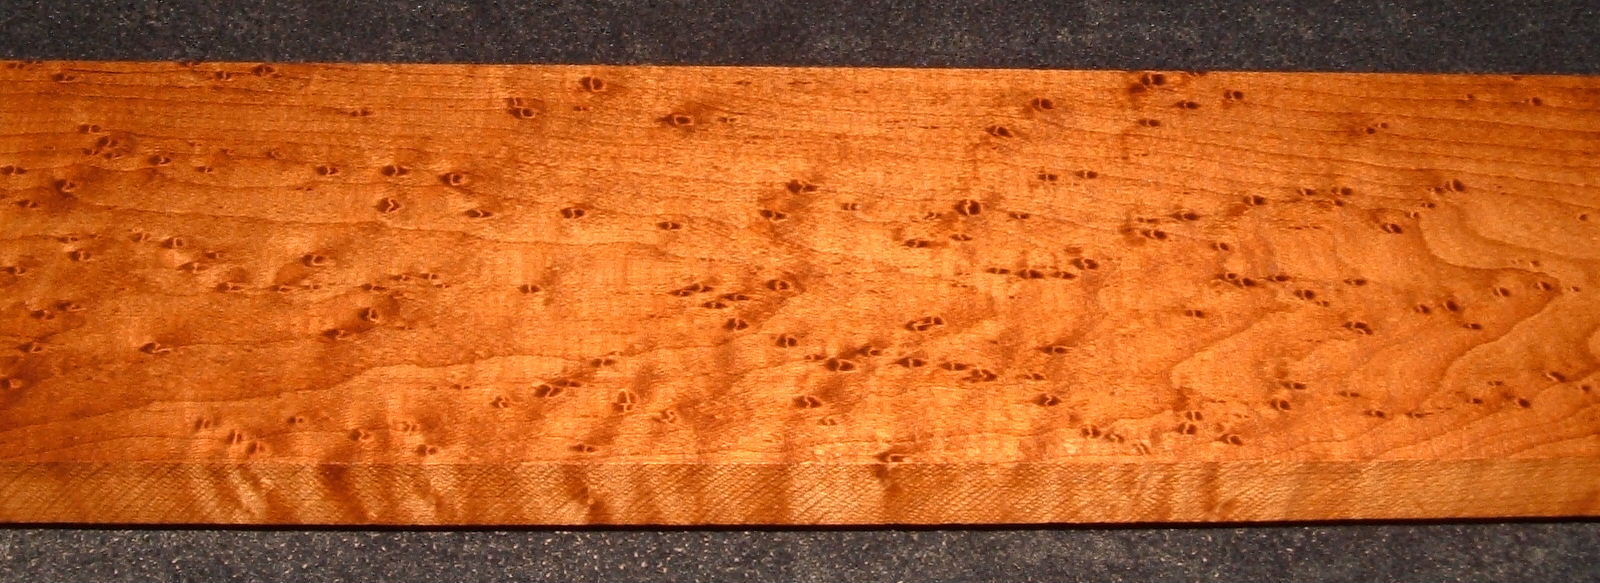 RBM2103-81, 13/16x4x34, Roasted Torrefied Quilted, Birdseye Hard Maple